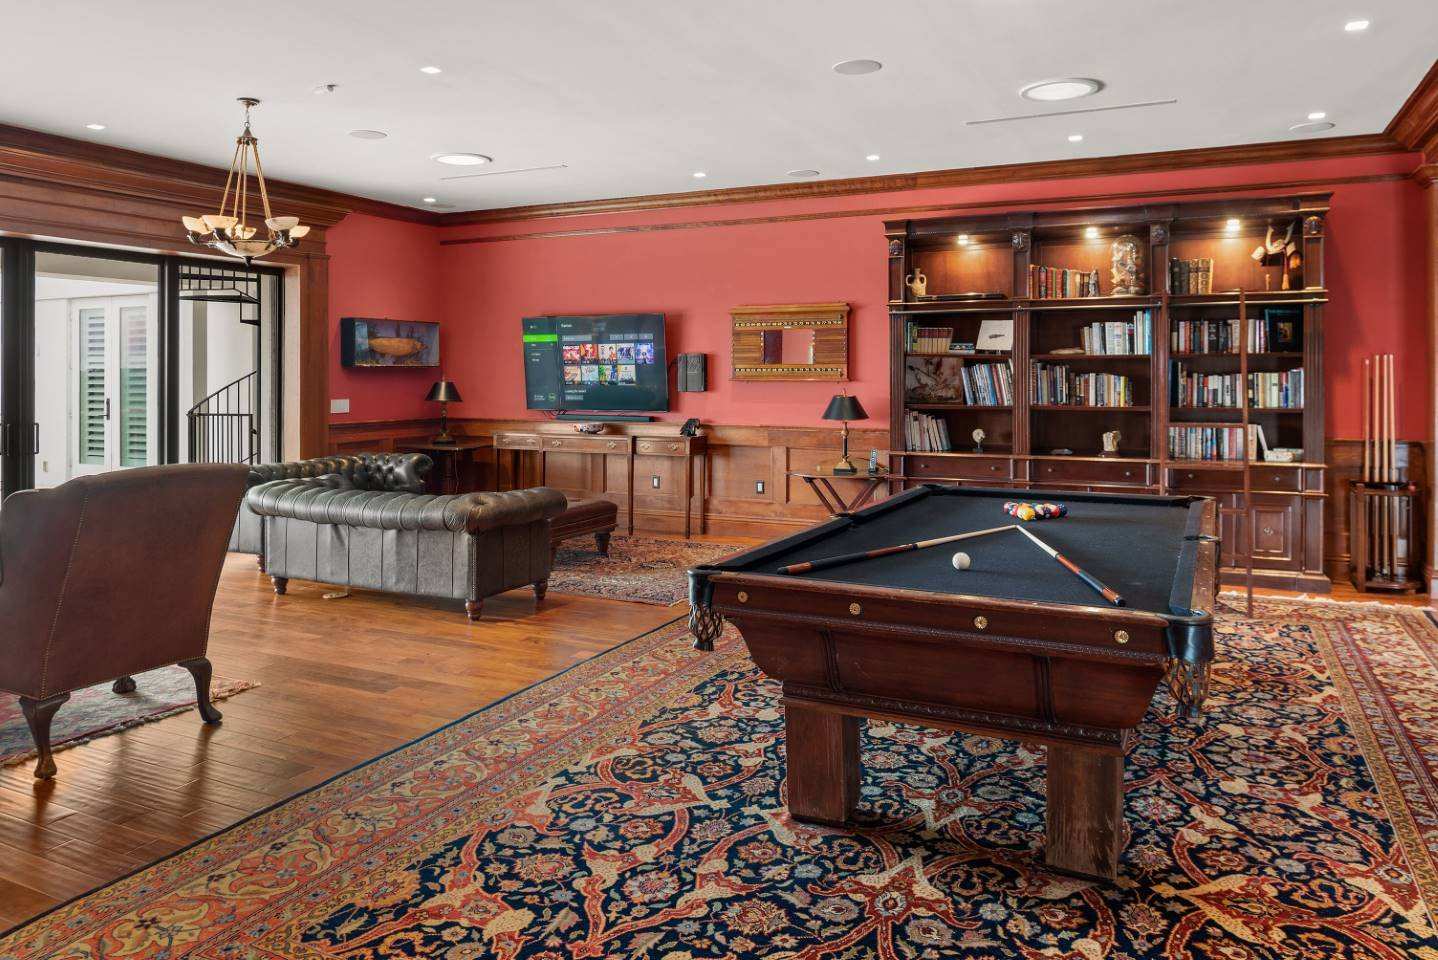 The Eclectic Colonial Estate-213663